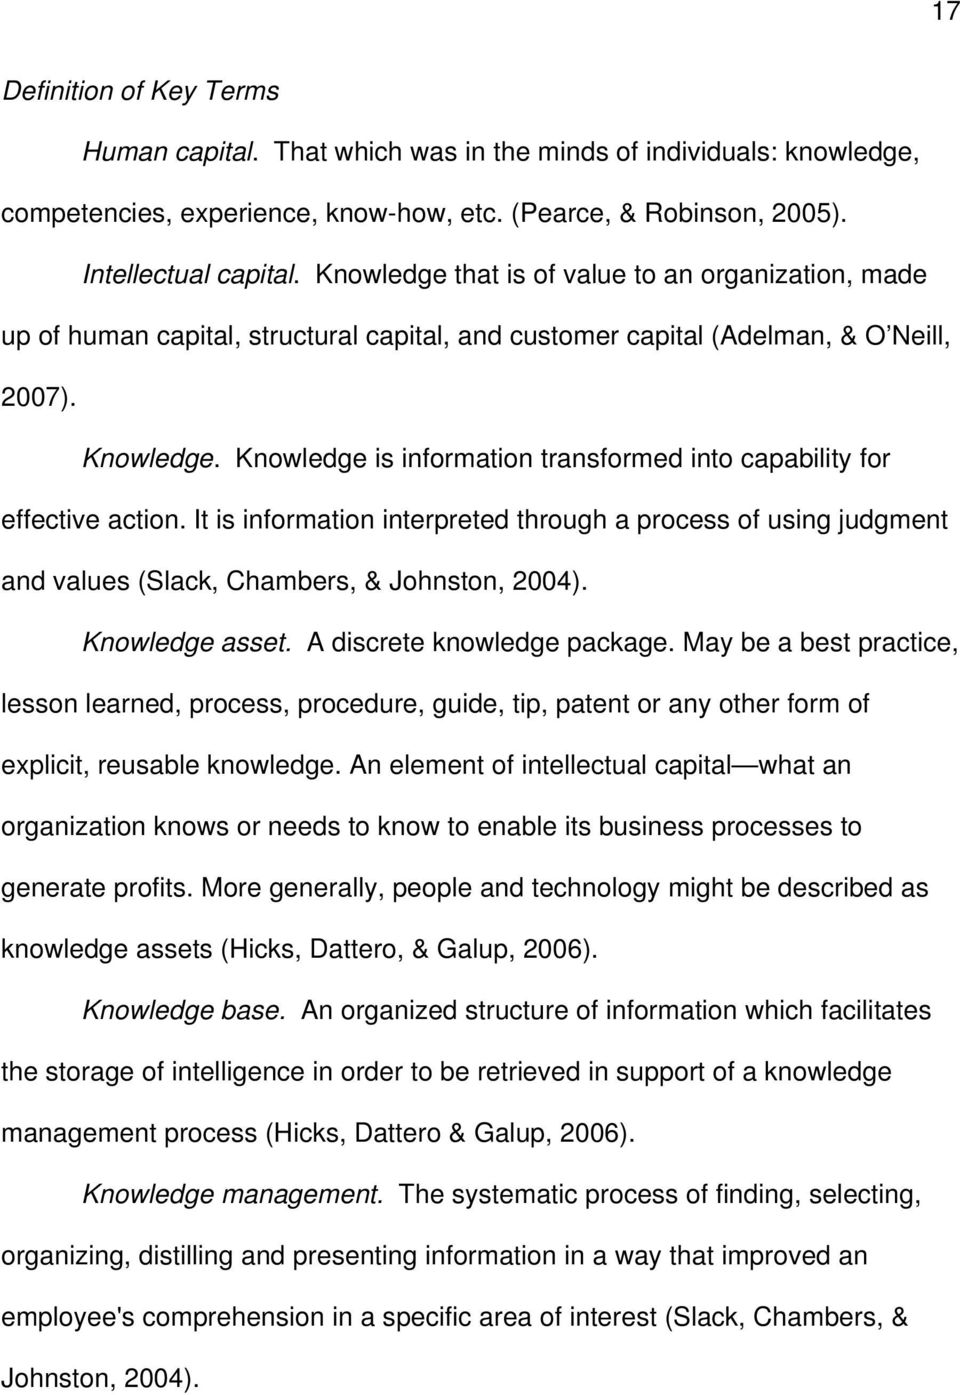 Knowledge is information transformed into capability for effective action. It is information interpreted through a process of using judgment and values (Slack, Chambers, & Johnston, 2004).